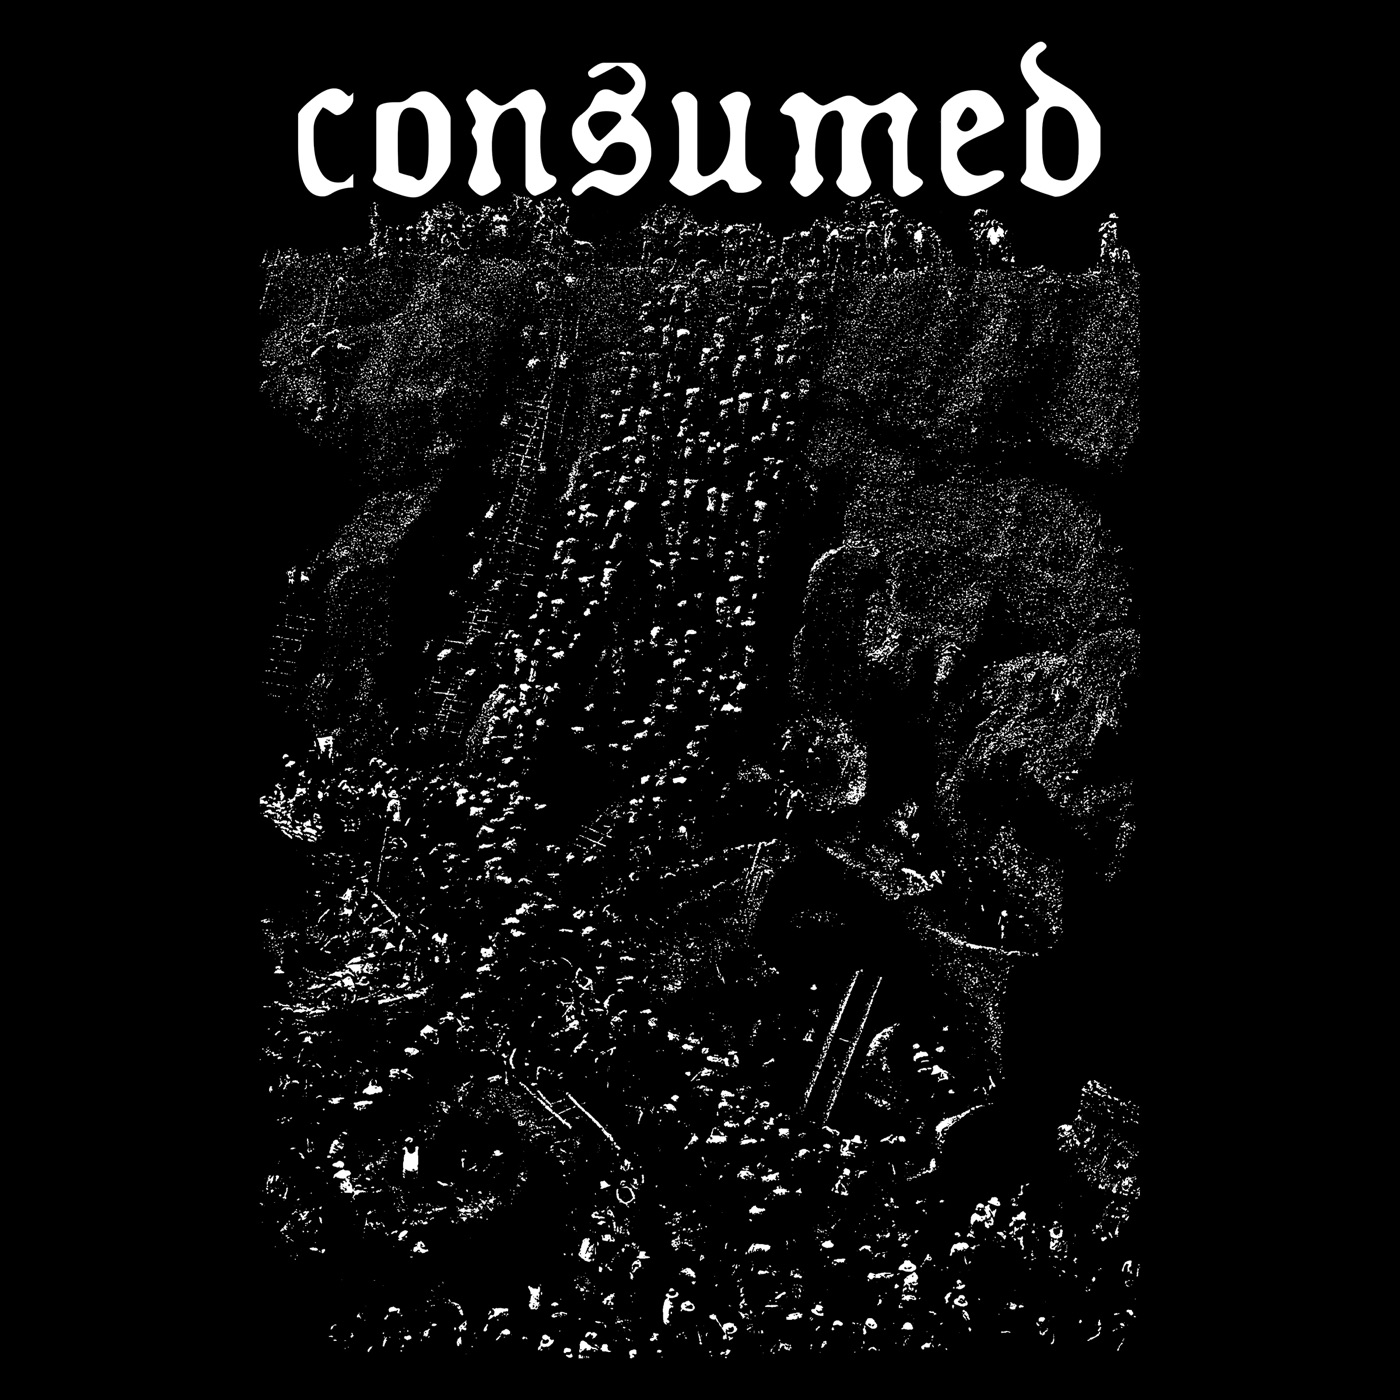 Consumed - Consumed [EP] (2018)